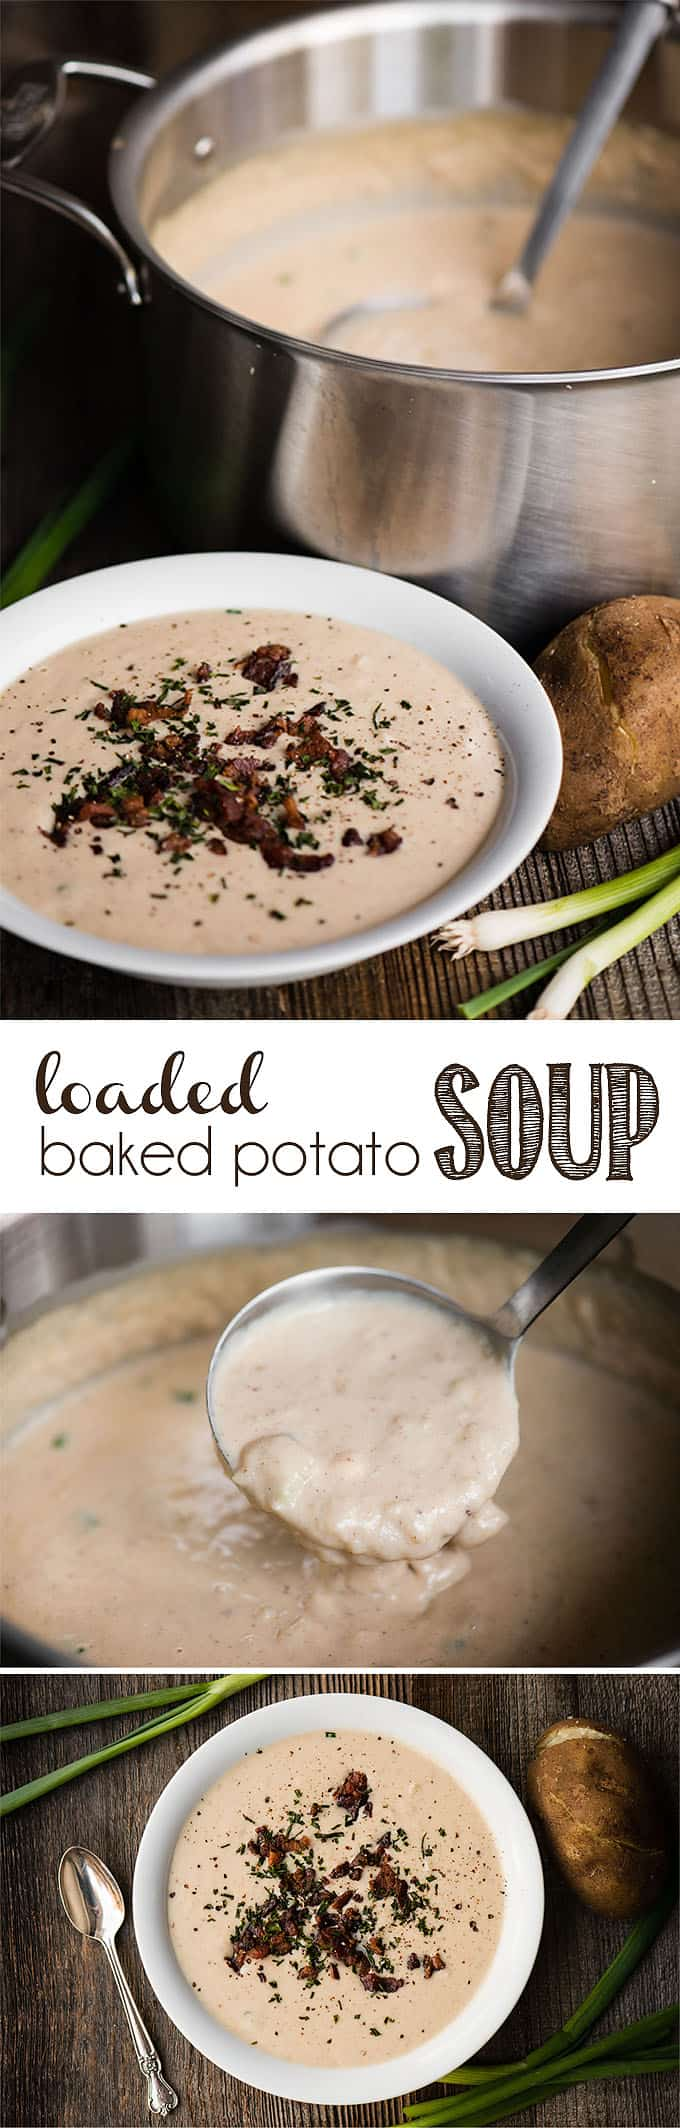 Loaded Baked Potato Soup is a rich and creamy soup filled with everything the perfect loaded potato has. Crisp bacon, sour cream, grated cheddar cheese, green onions, and perfectly cooked baked potatoes. This is one of the best comfort food meals best enjoyed with a fresh green salad and hot crusty bread. Yum! #bakedpotatosoup #soup #loadedbakedpotato